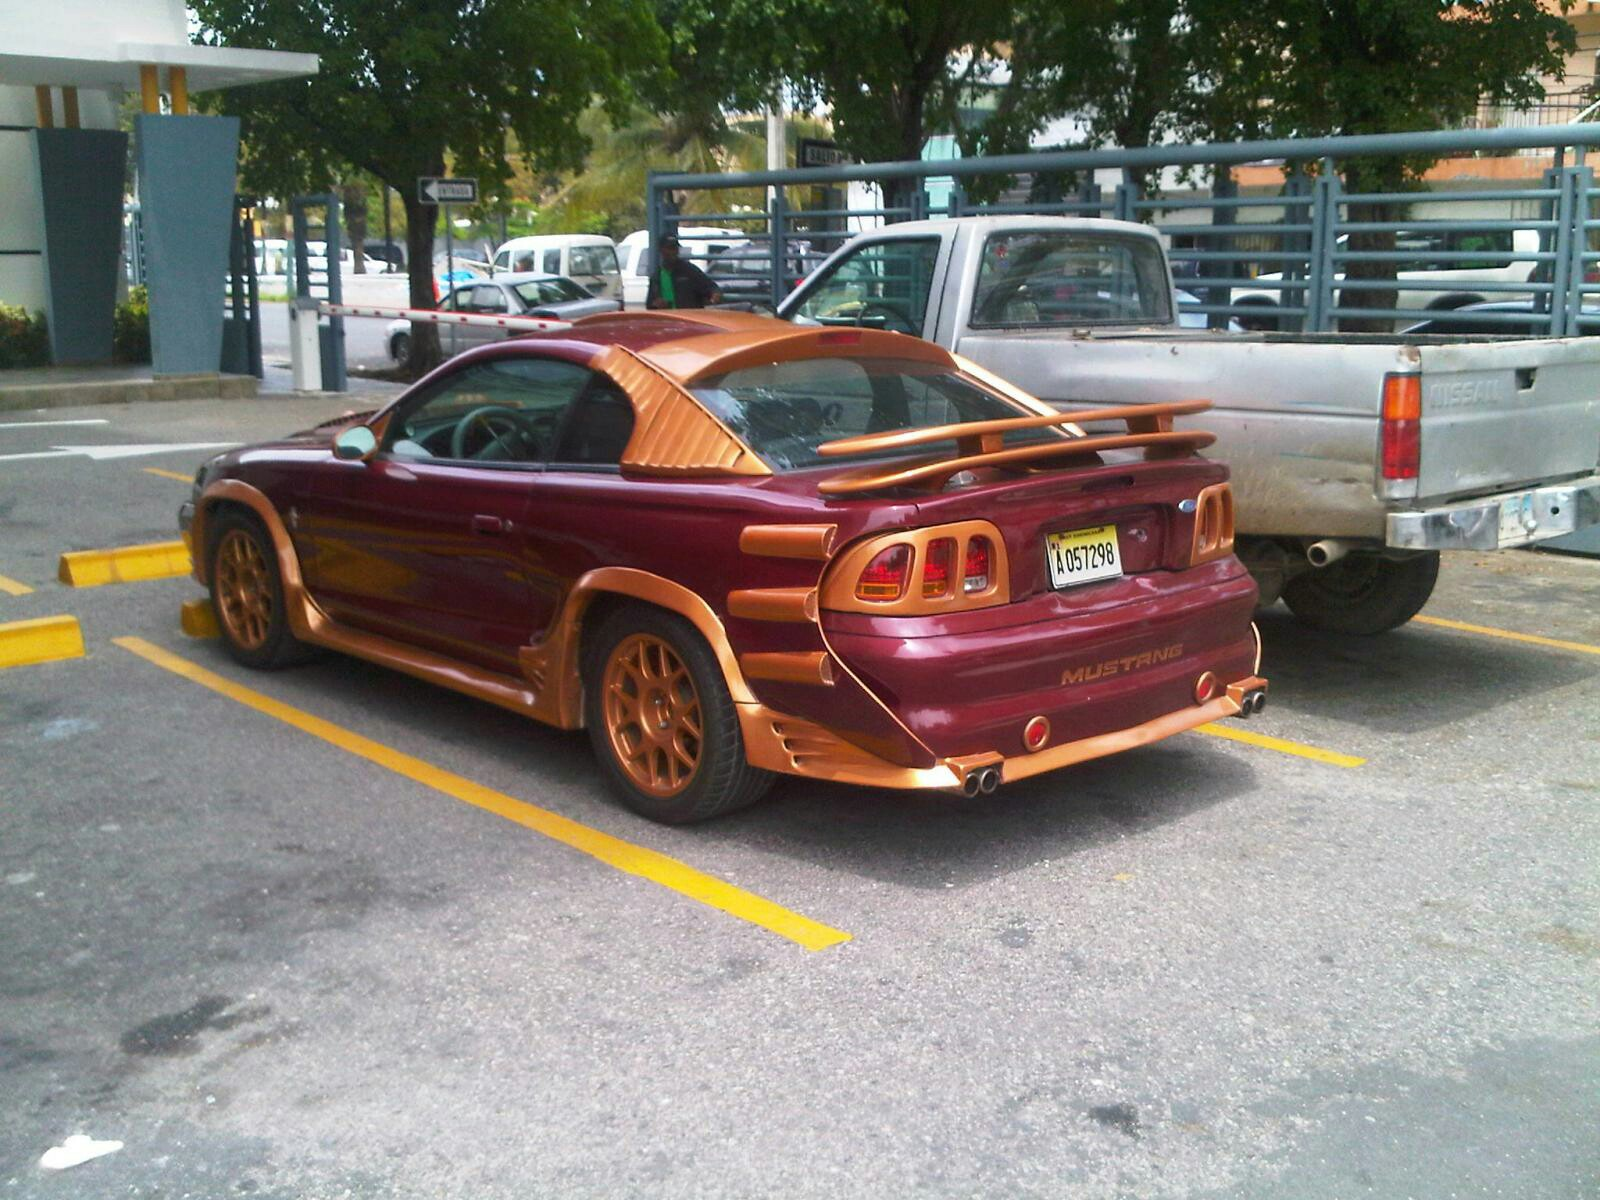 Click image for larger version  Name:ricer2.jpg Views:16 Size:384.3 KB ID:254434